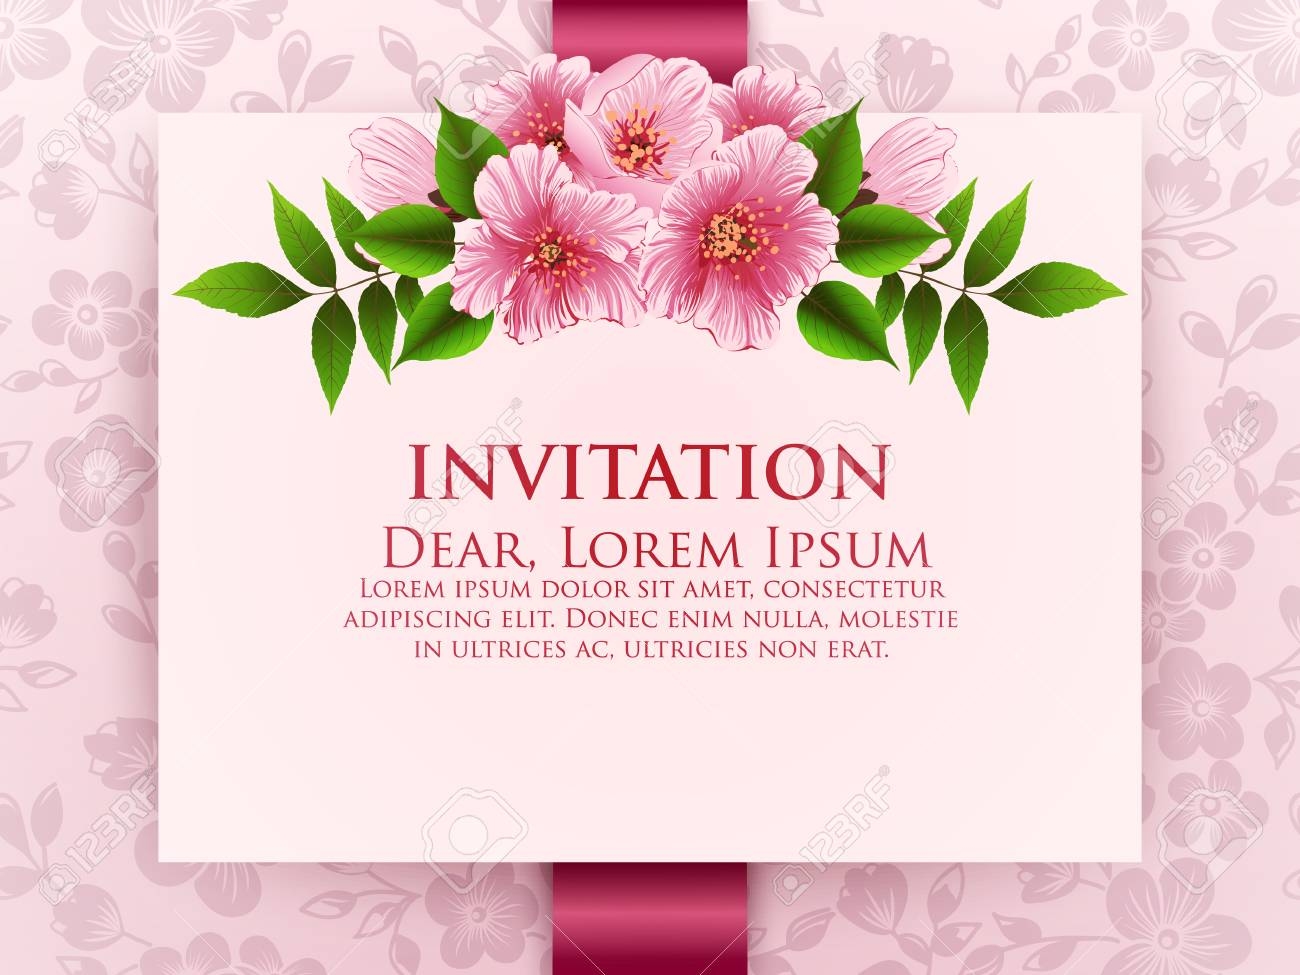 Wedding Invitation Card Vector Invitation Card With Floral Background Royalty Free Cliparts Vectors And Stock Illustration Image 76170142